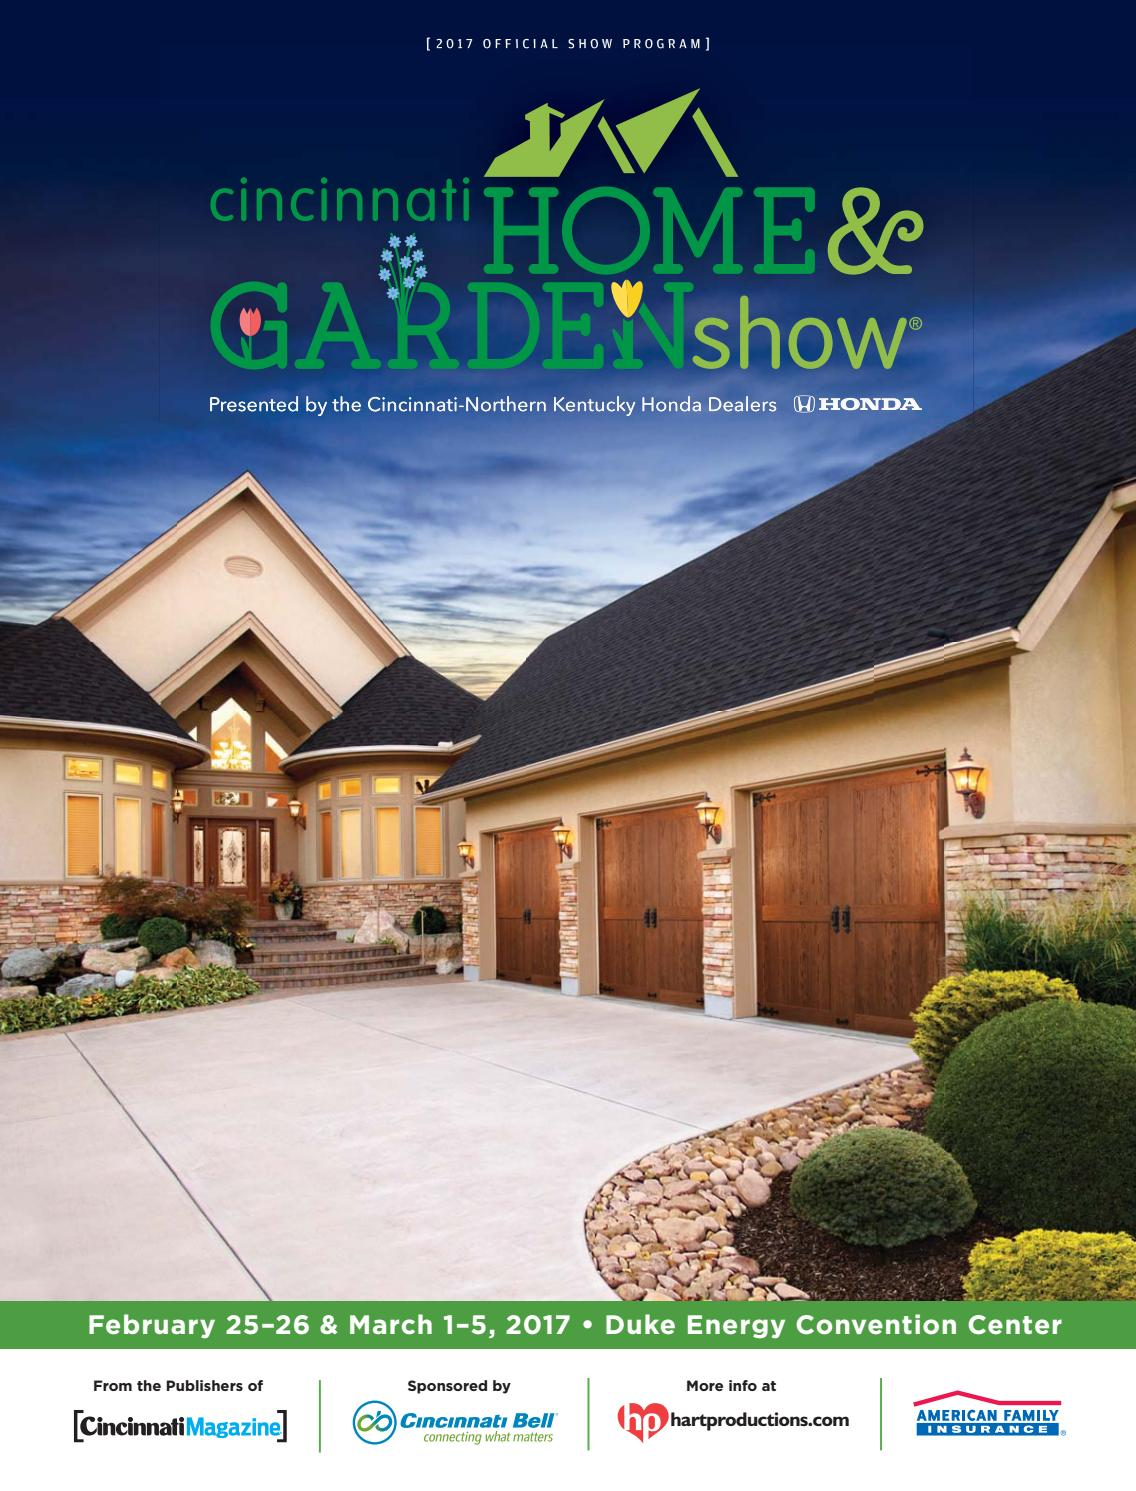 Cincinnati home garden show 2017 by cincinnati magazine - Cincinnati home and garden show 2017 ...